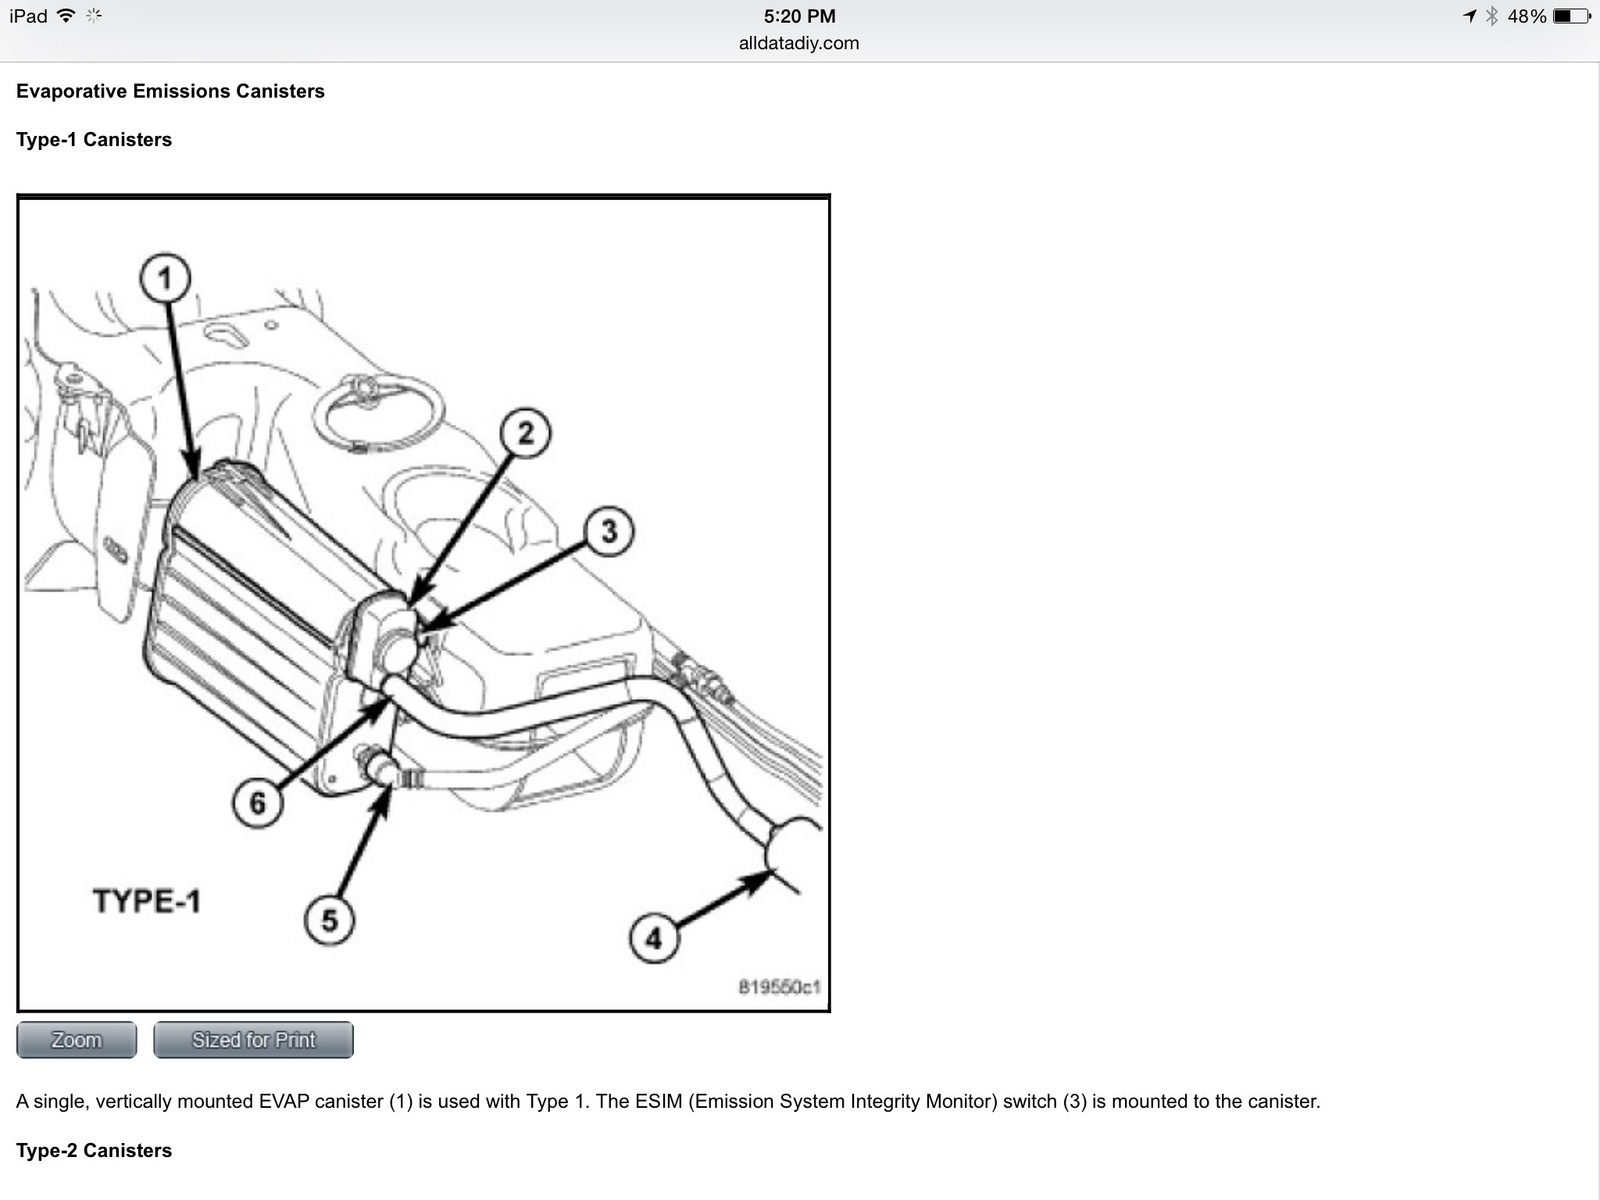 Chevy Ls Engine Crankshaft Sensor Location as well Catalog3 in addition 97 Camaro Air Check Valve Location additionally 2000 Dodge Caravan Coolant Temperature Sensor Location moreover 2007 Nissan Altima Fuse Box 2010 Nissan Altima Fuse Box Diagram Pertaining To 1998 Nissan Altima Fuse Box Diagram. on 2001 c5 corvette wiring diagram